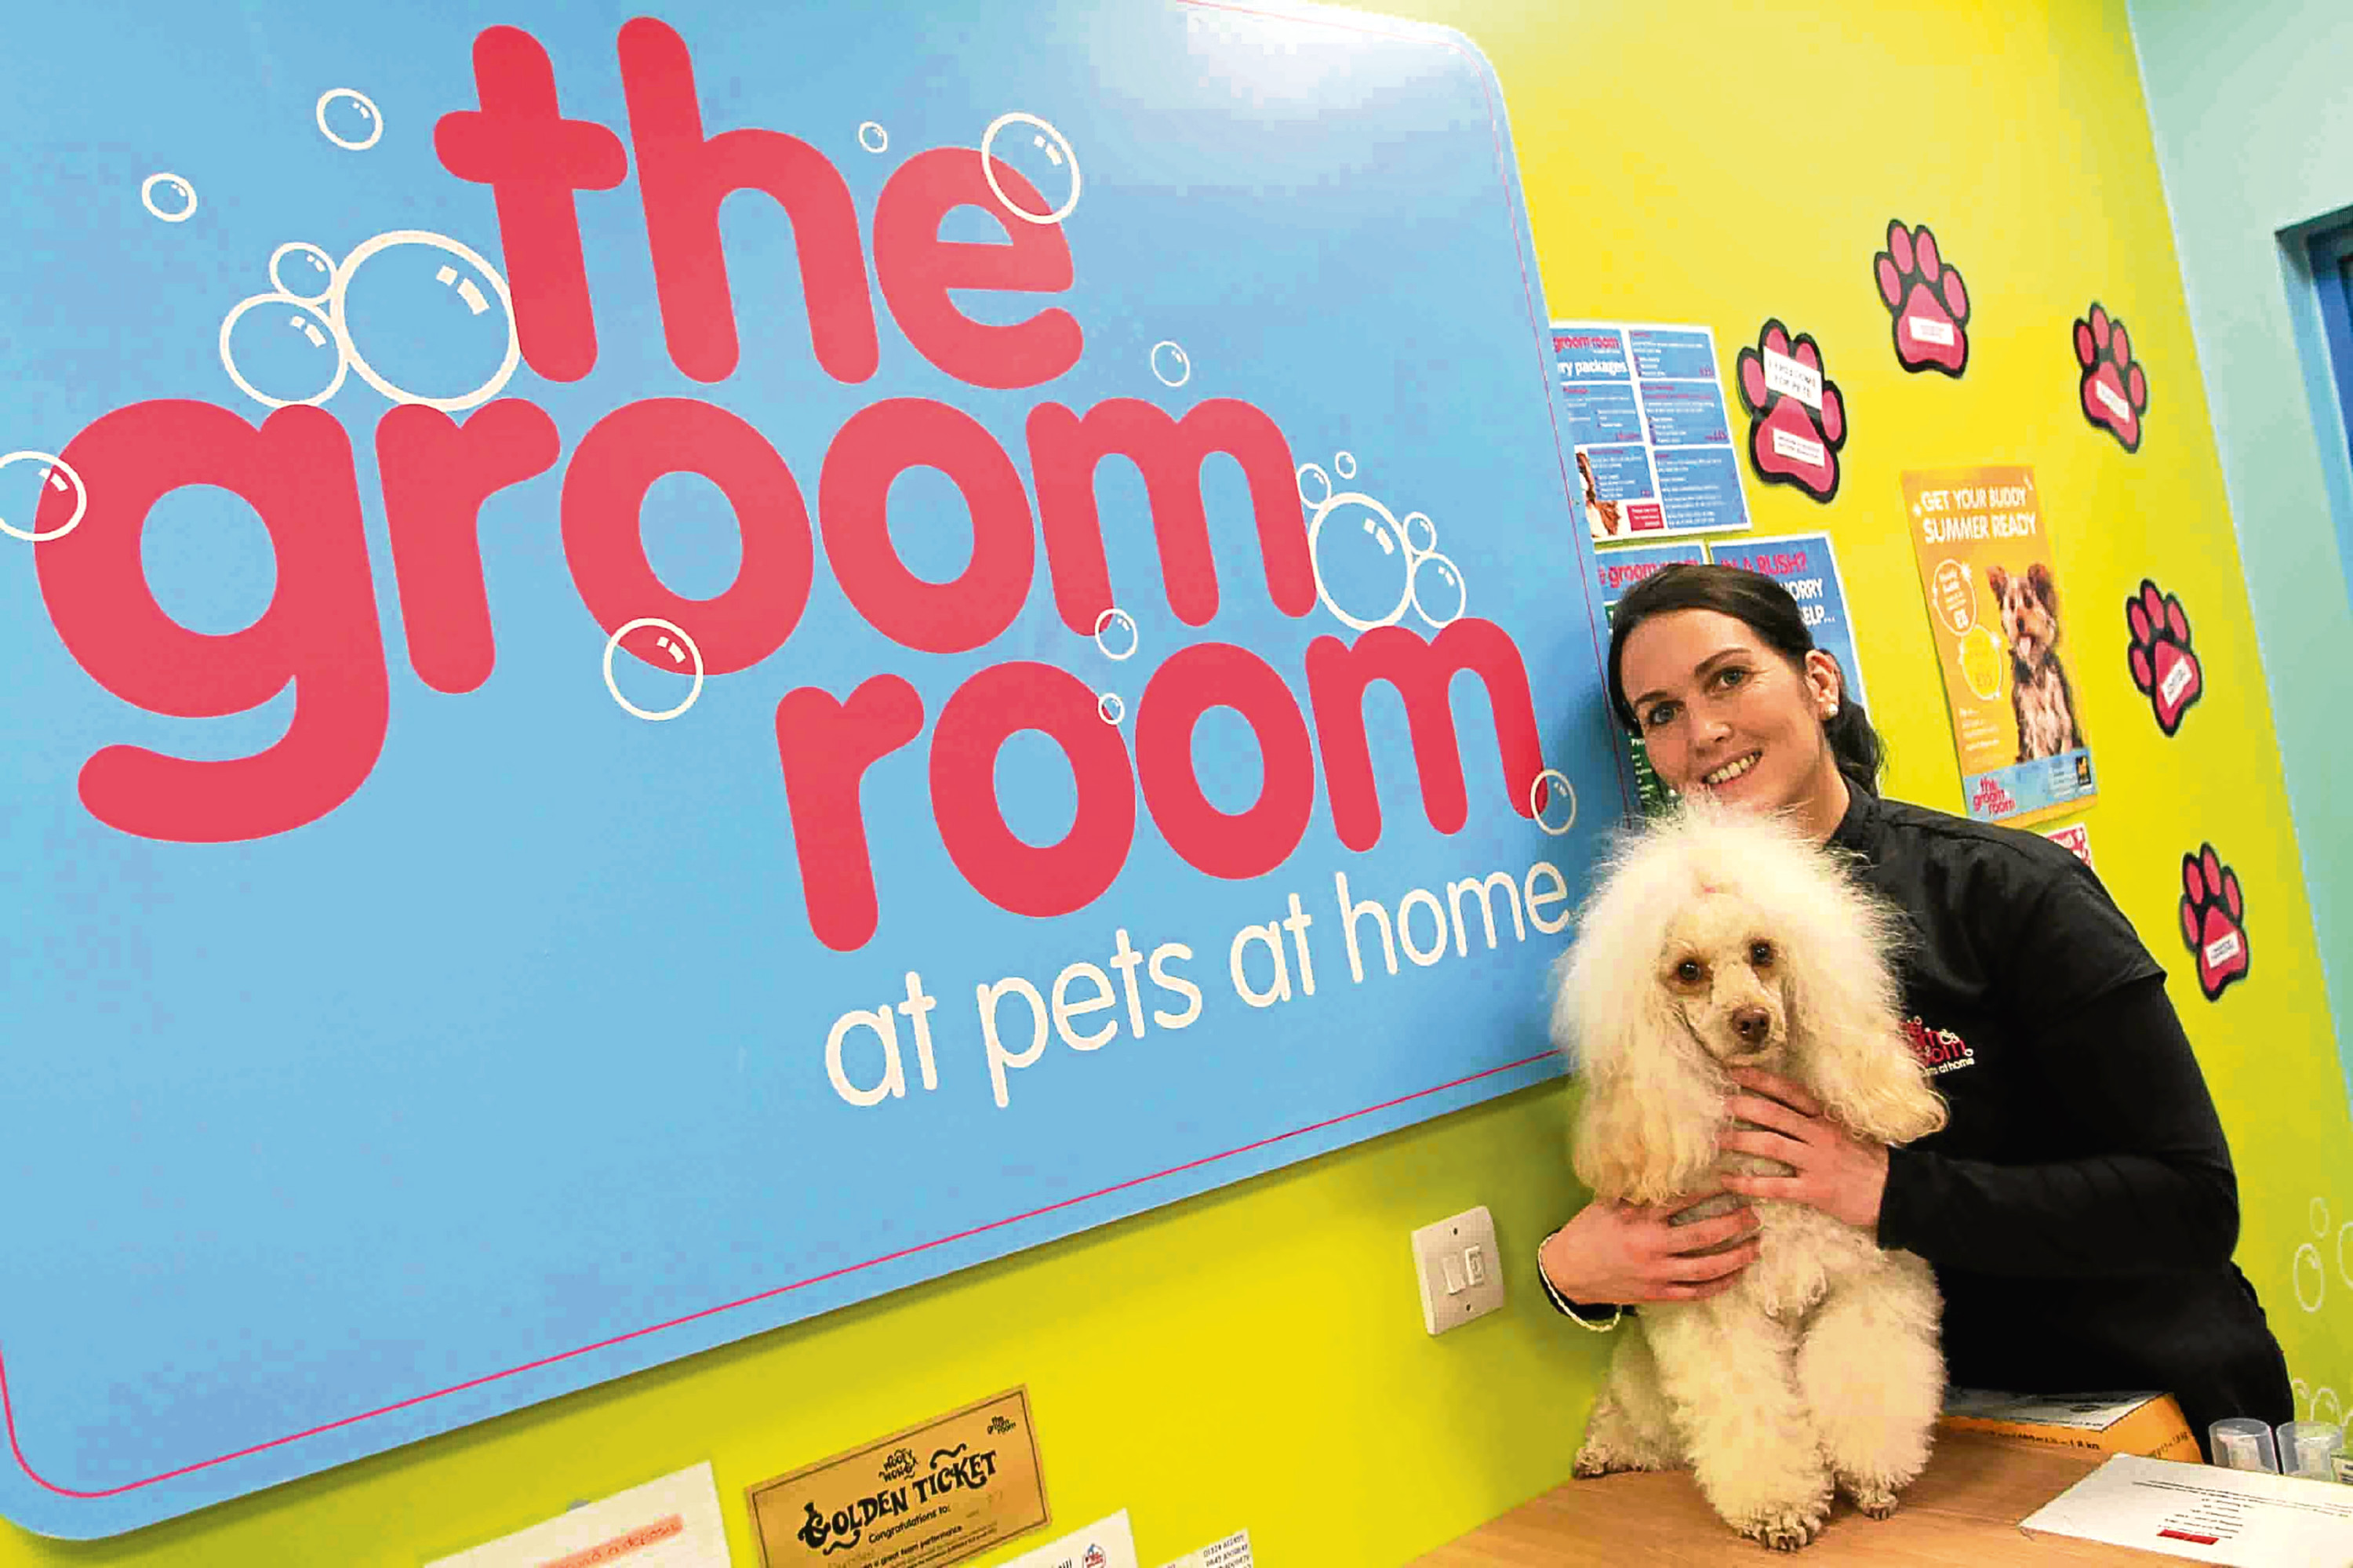 Lisa McIlreavy at the Groom Room in Pets At Home